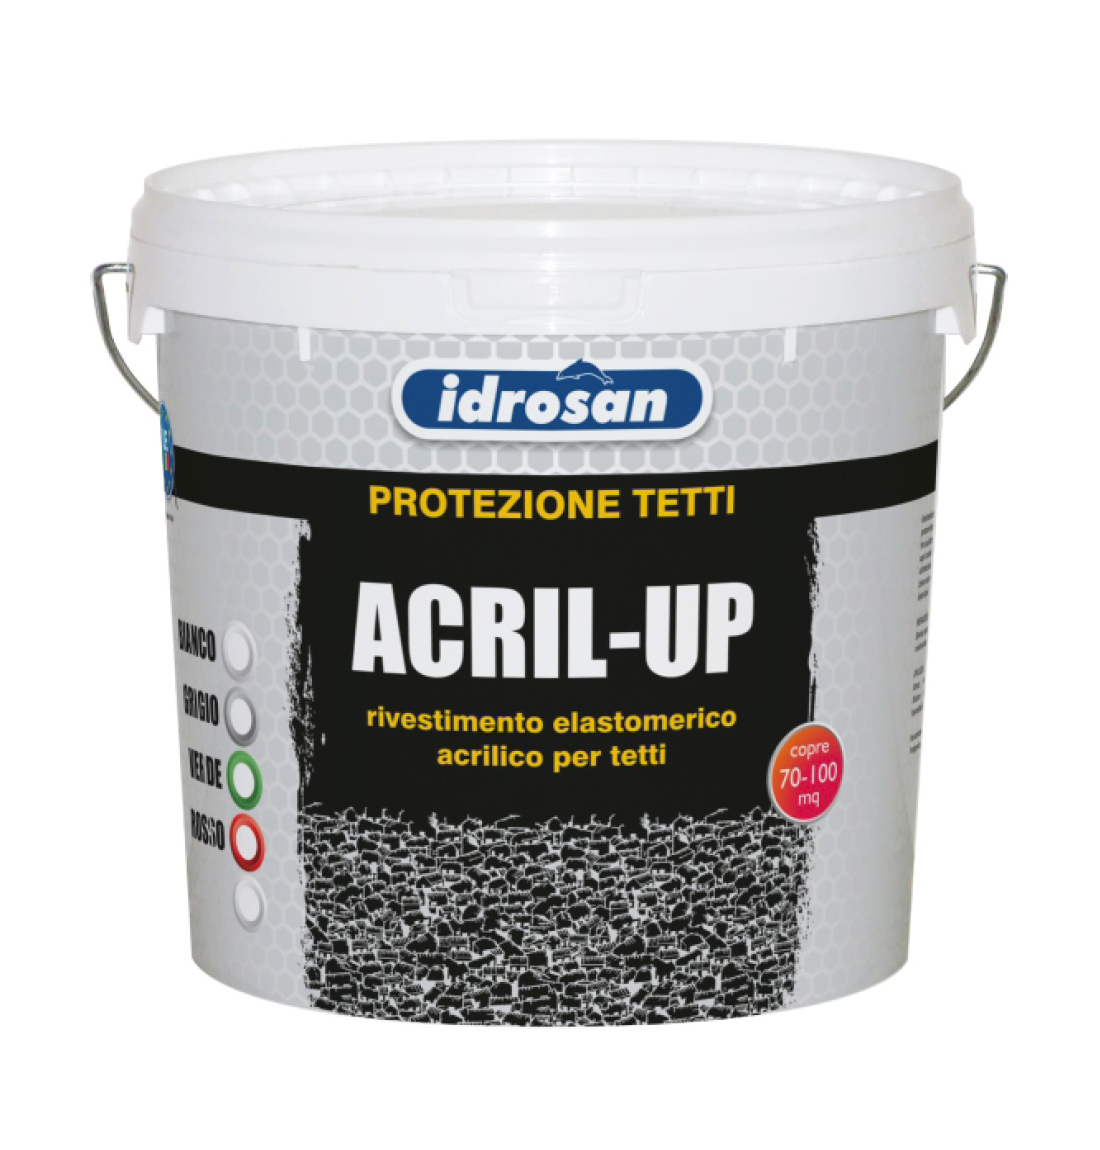 ACRIL-UP